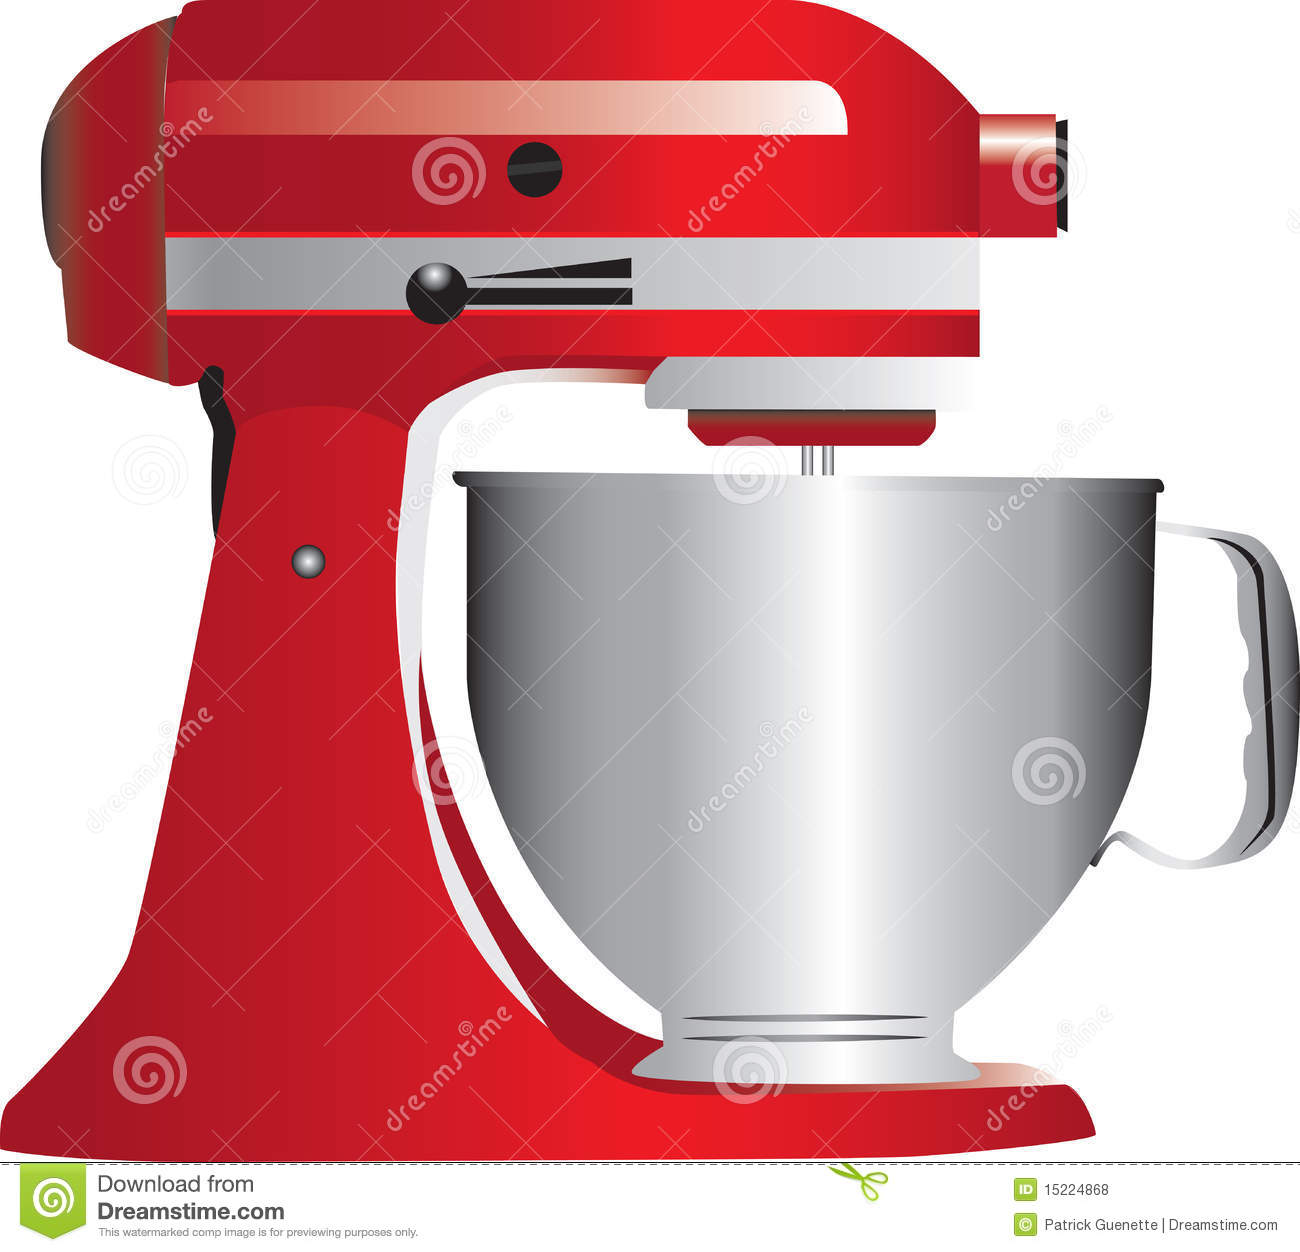 Red Stand Mixer Royalty Free Stock Photos.